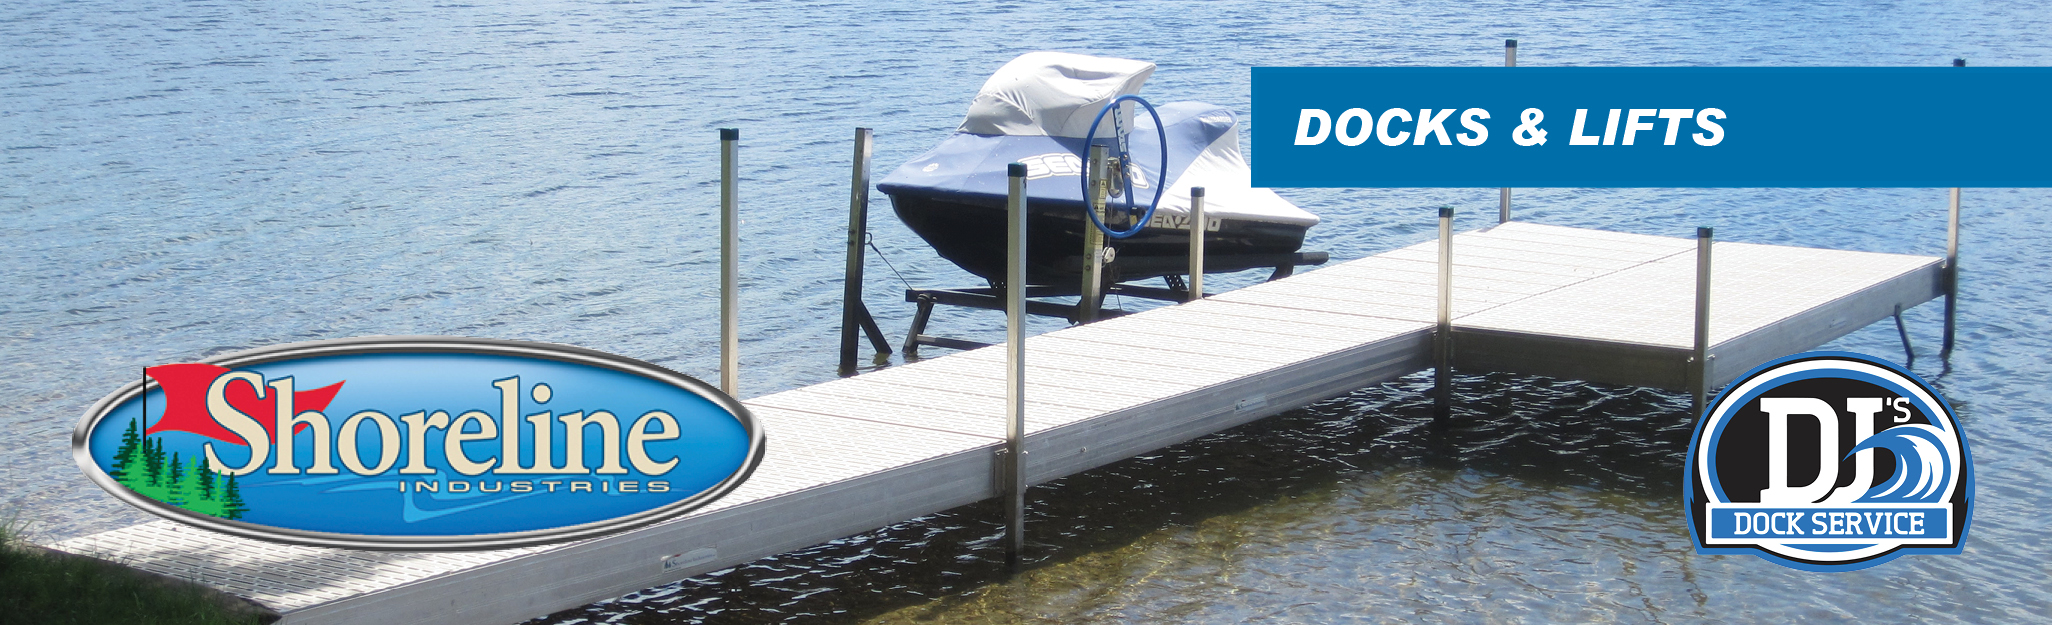 DJ's Dock Service | ROCK OUT WITH YOUR DOCK OUT